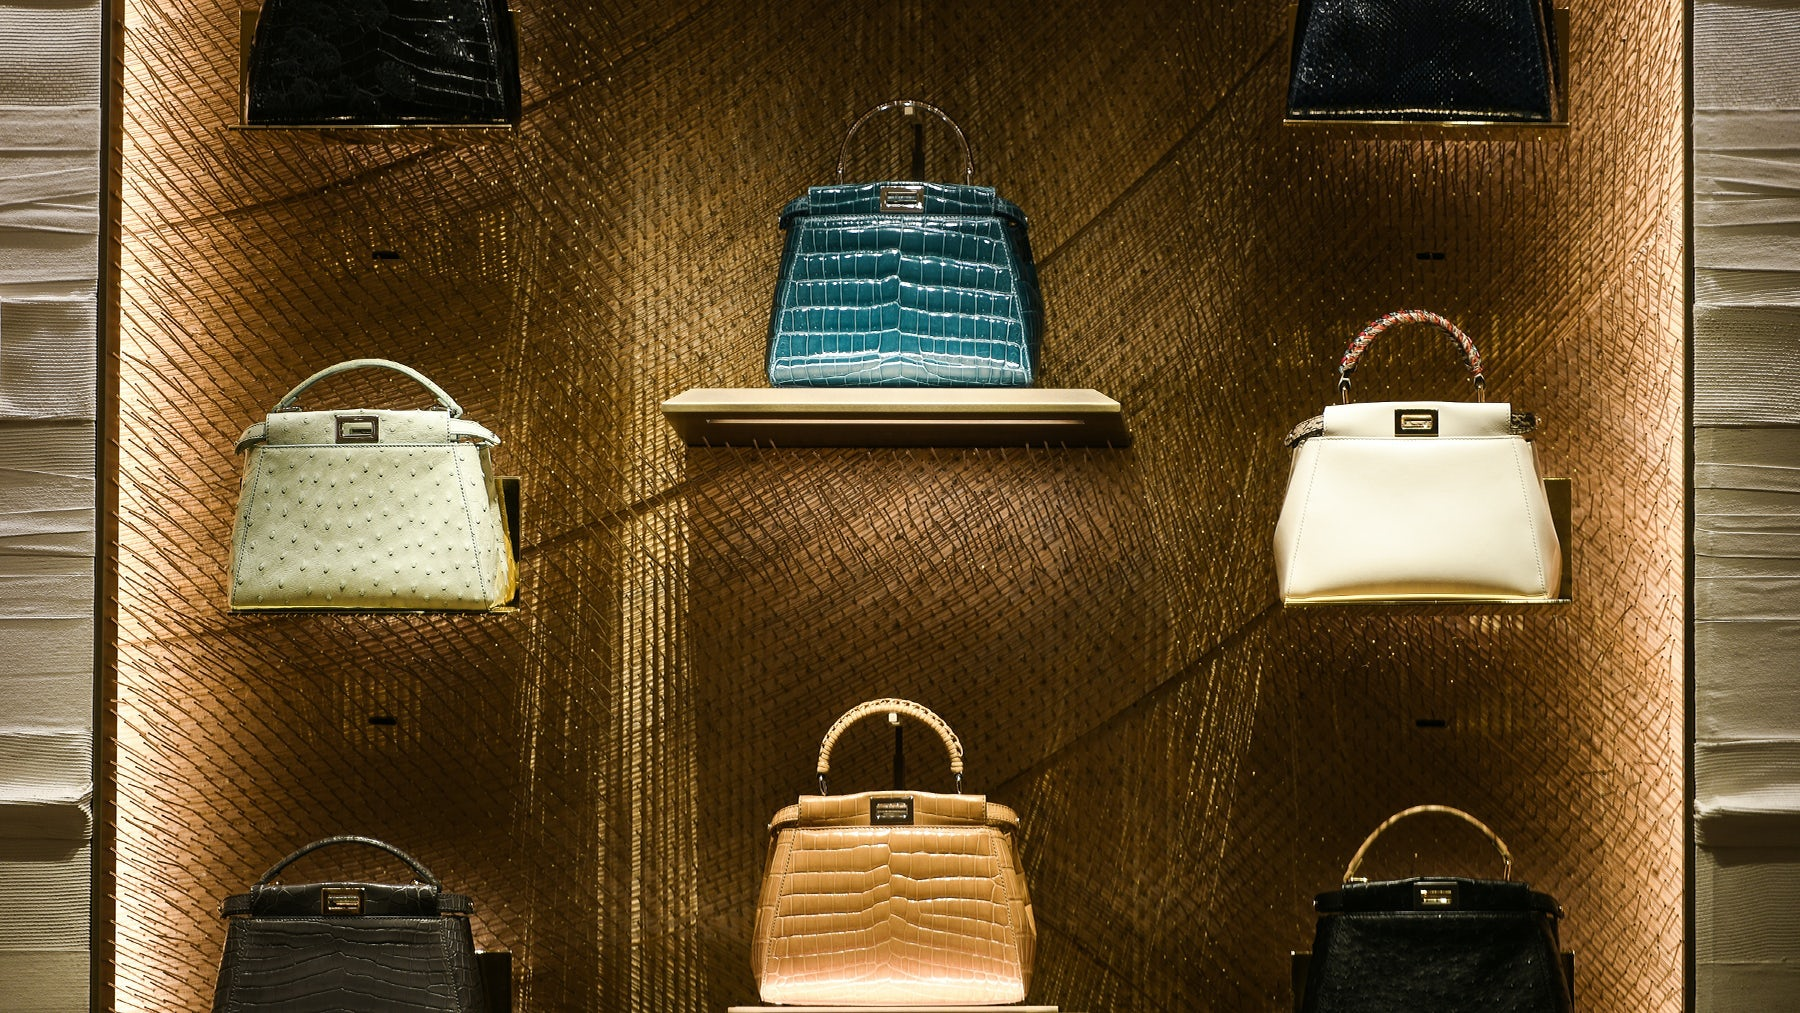 Fendi leather purses on display at a store in Paris. Shutterstock.